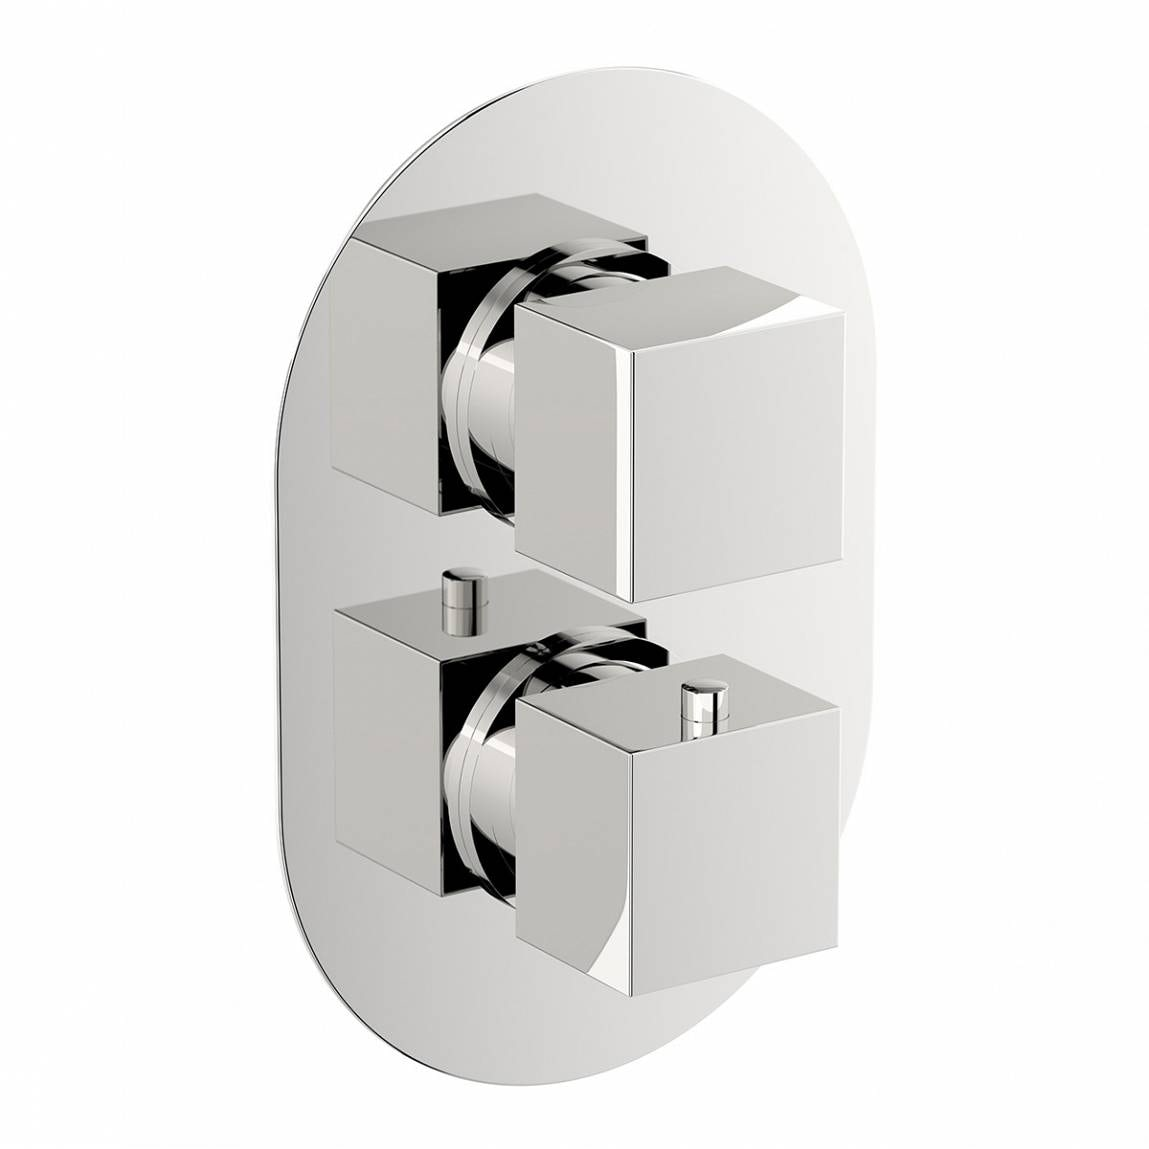 Image of Mode Cubik oval twin thermostatic shower valve